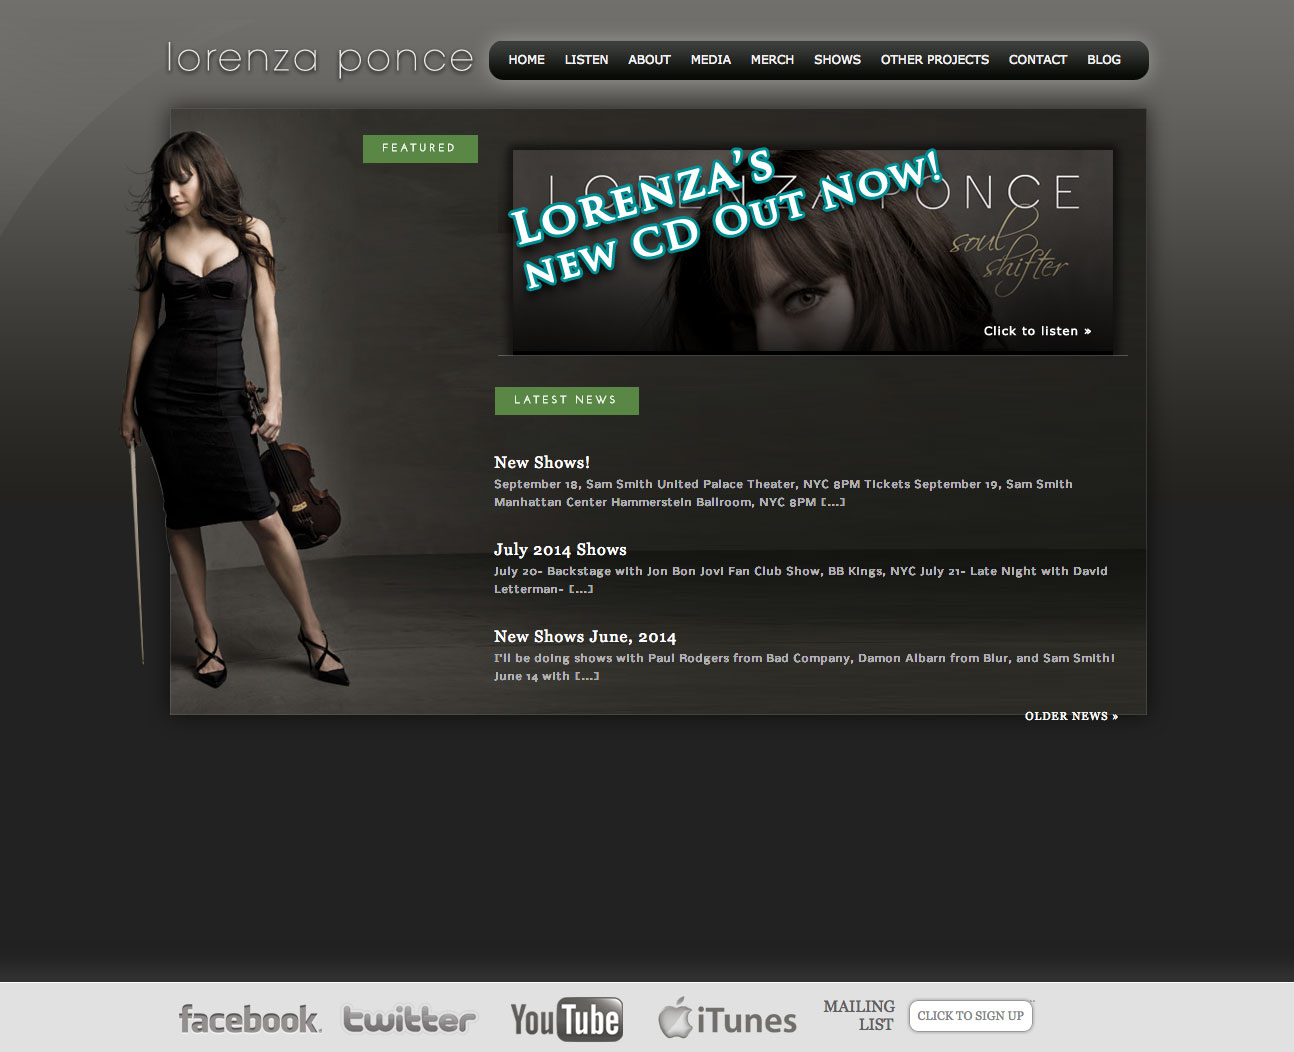 Lorenza Ponce Home Page Design